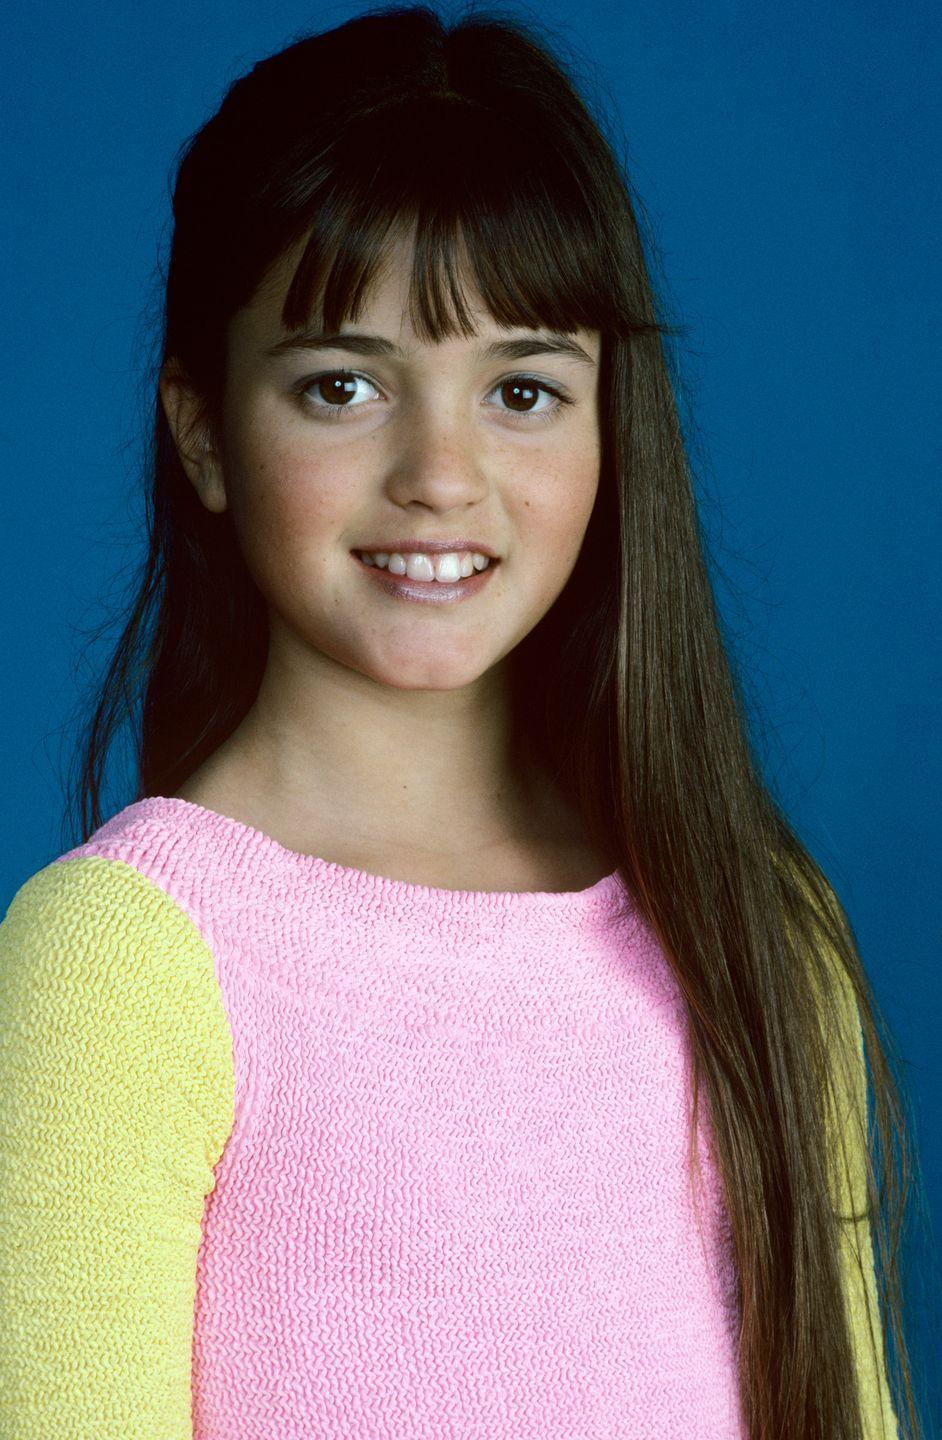 <p>Danica wooed the hearts of many teenage boys while playing Winnie Cooper on <em>The Wonder Years</em>.</p>